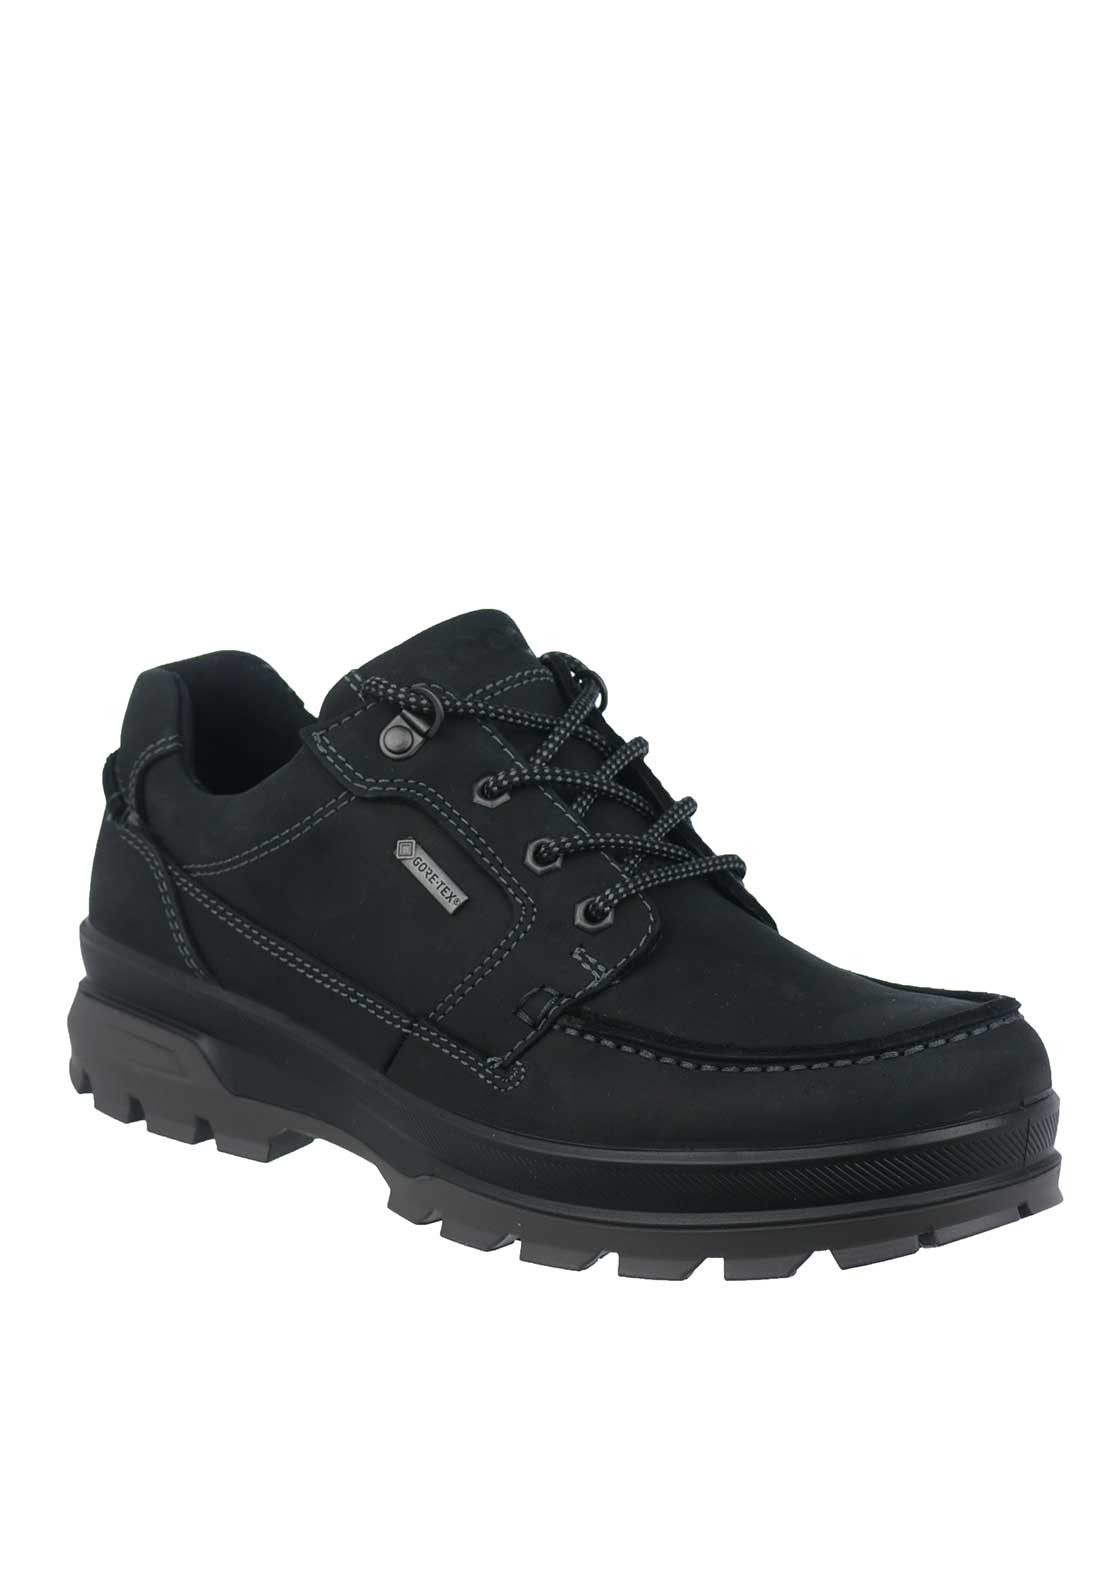 Ecco Mens Rugged Track Leather Waterproof Shoe, Black